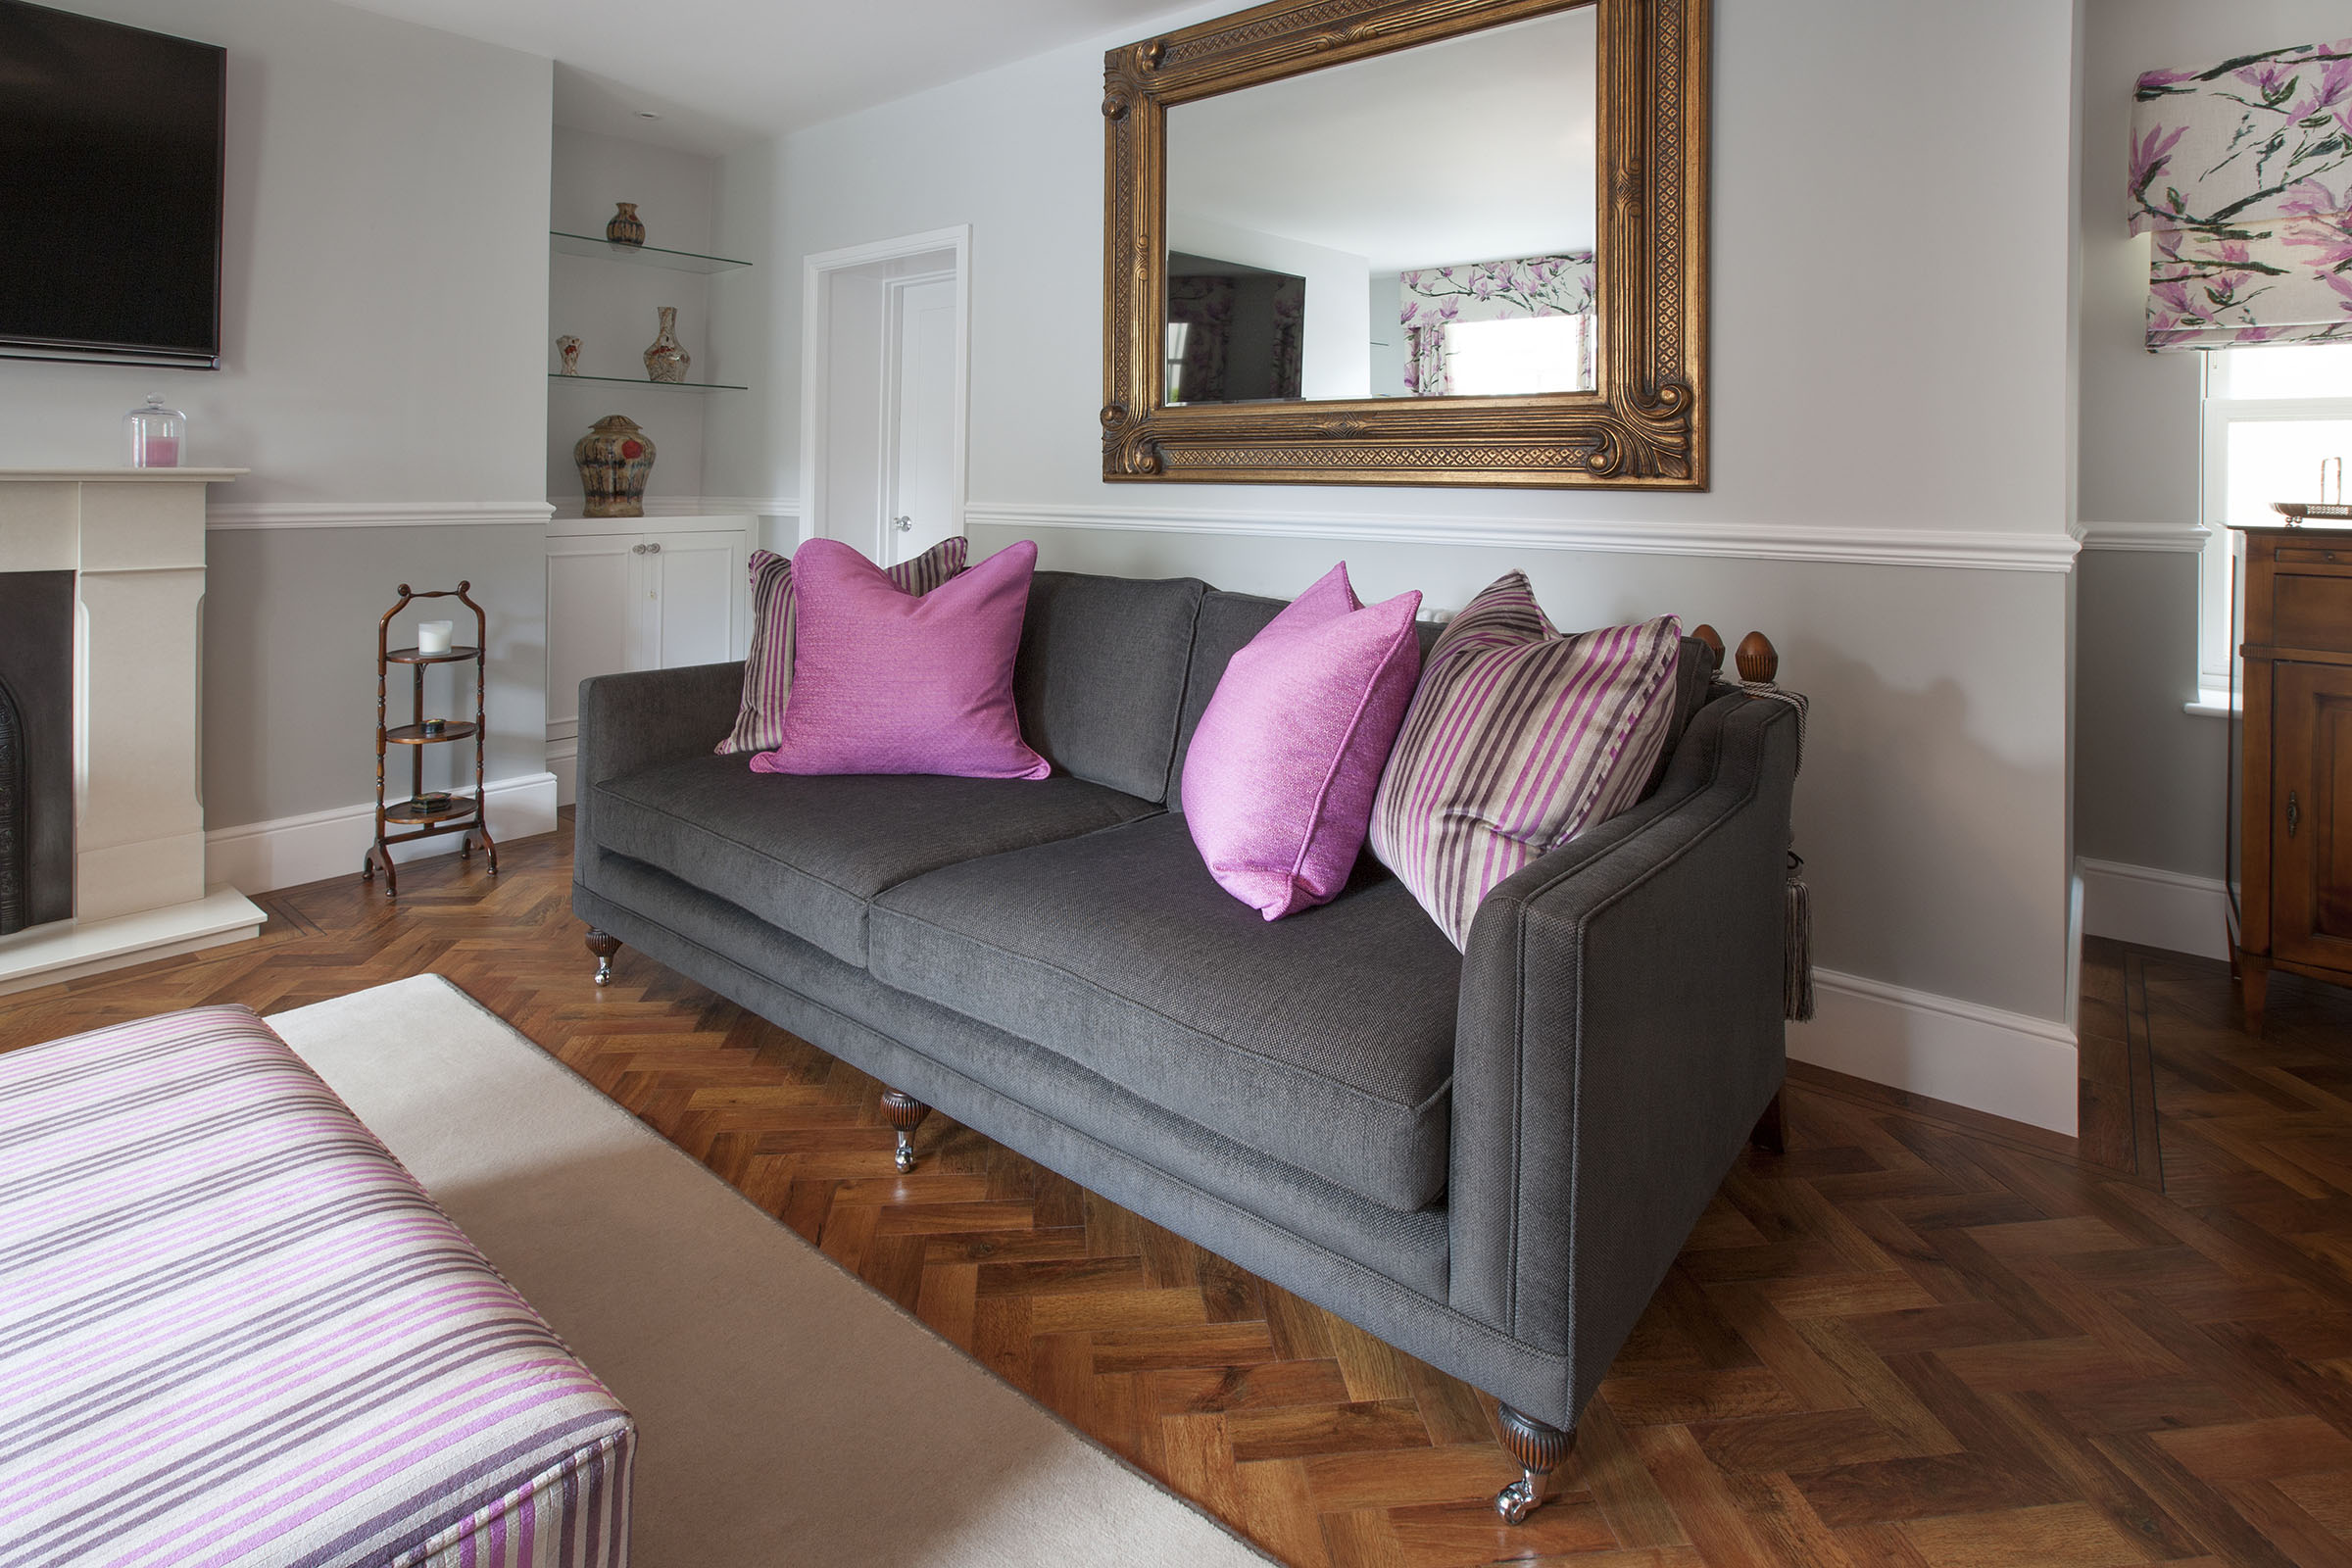 Sitting room with grey and pink theme for sofa, cushions and blinds.